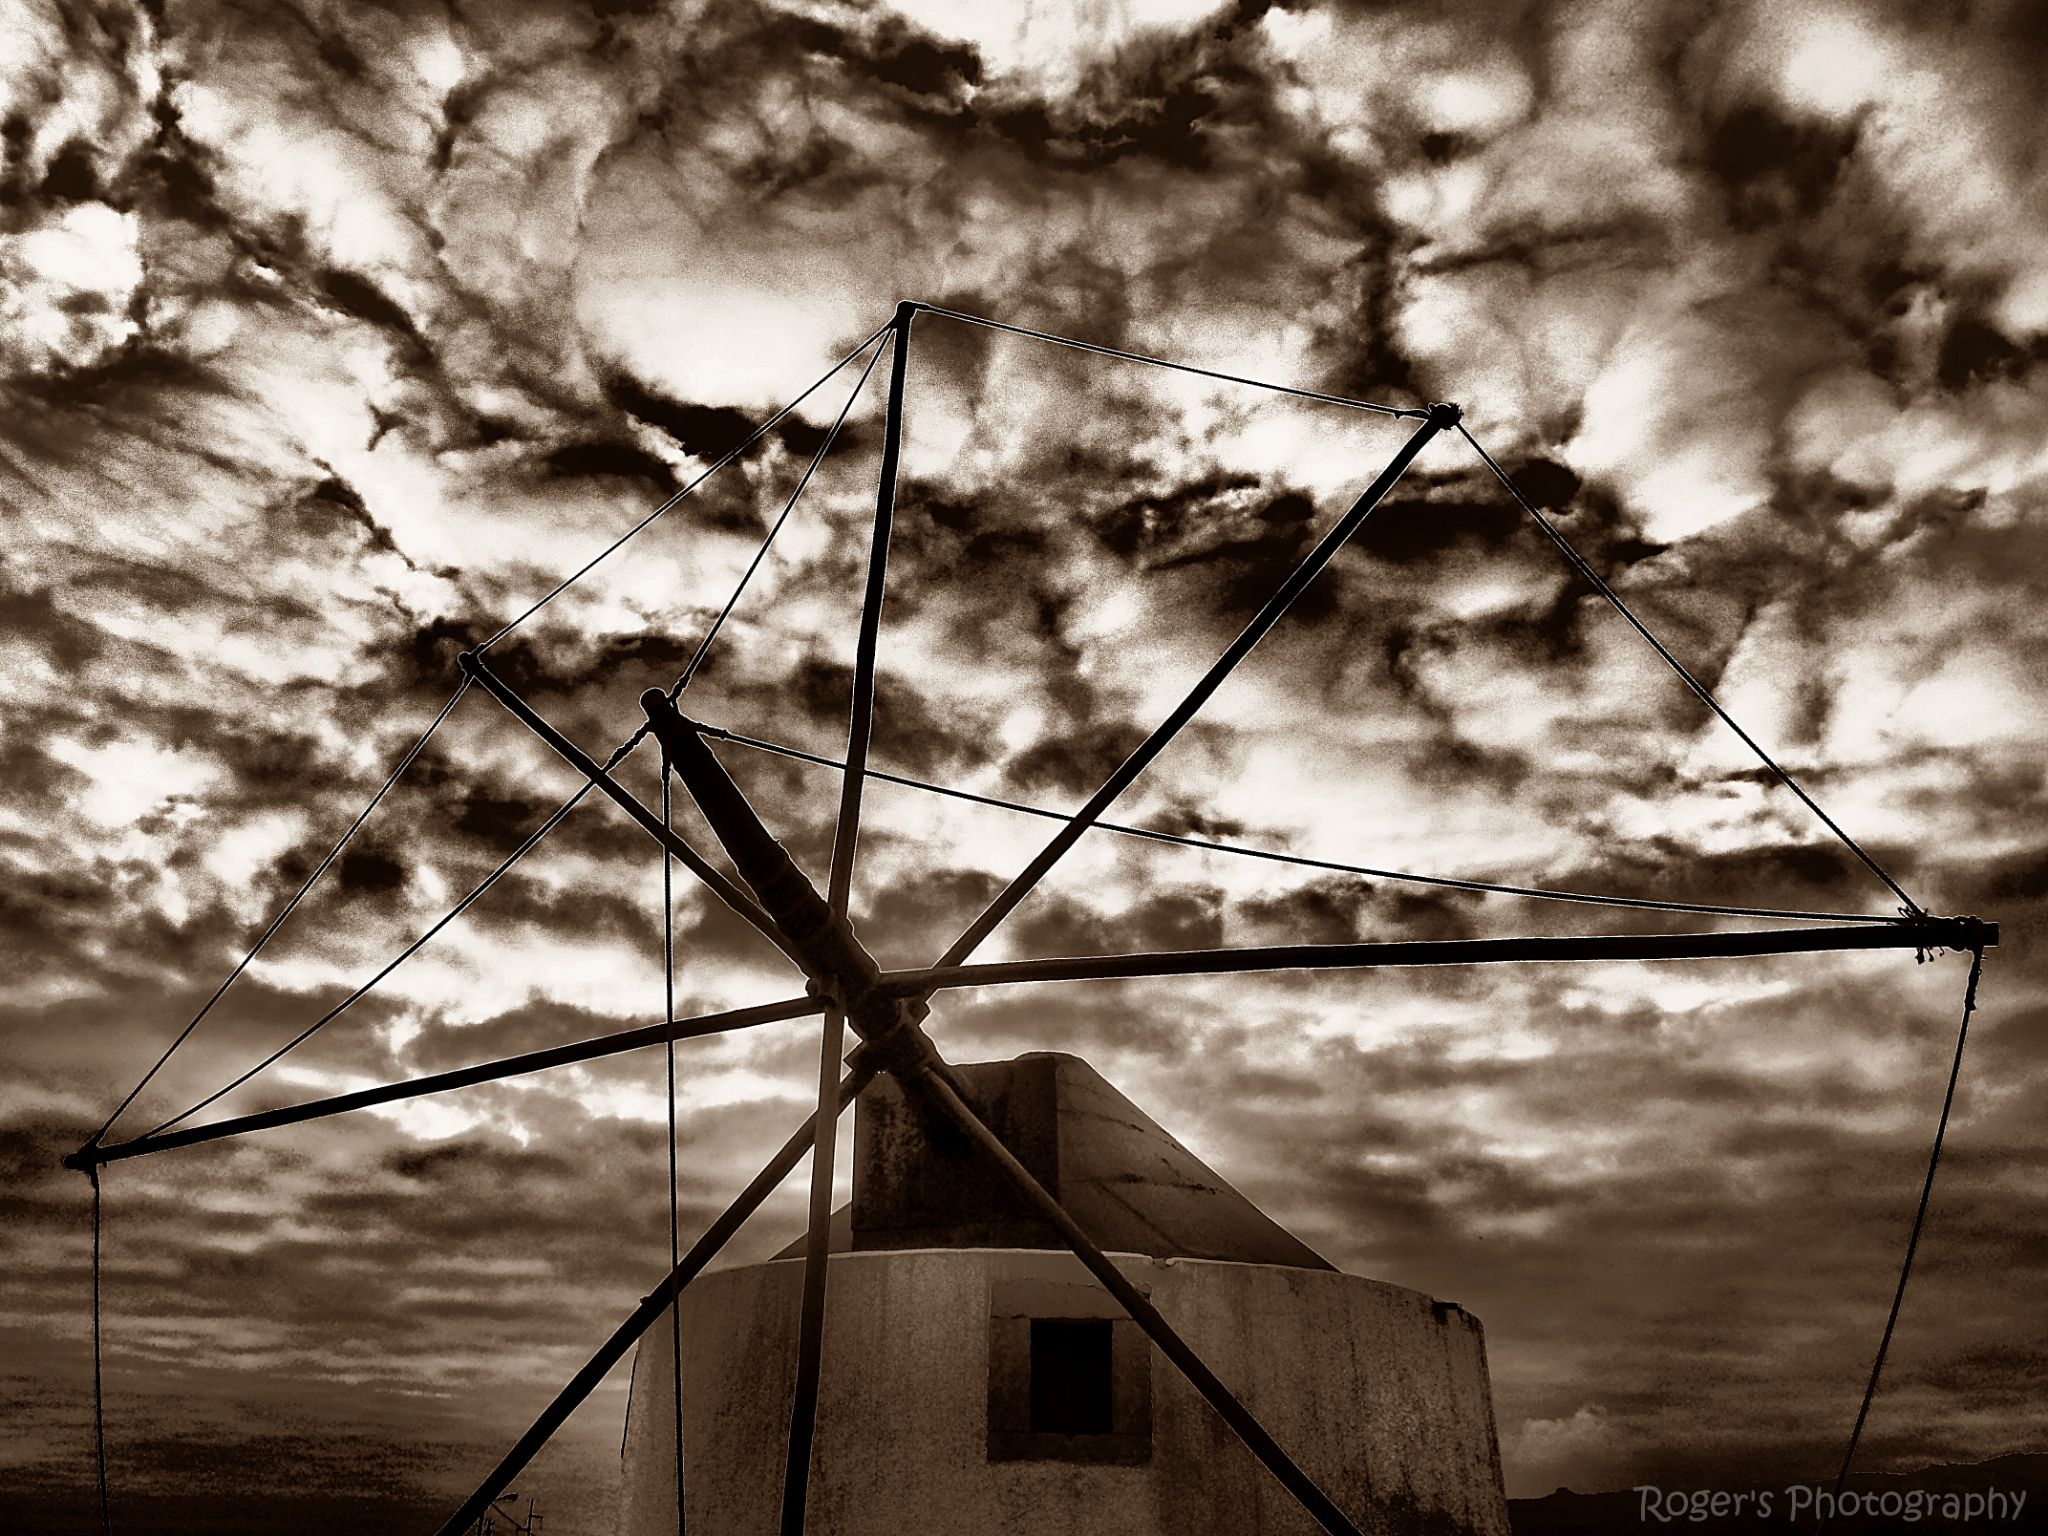 Wind mill by Roger Photography